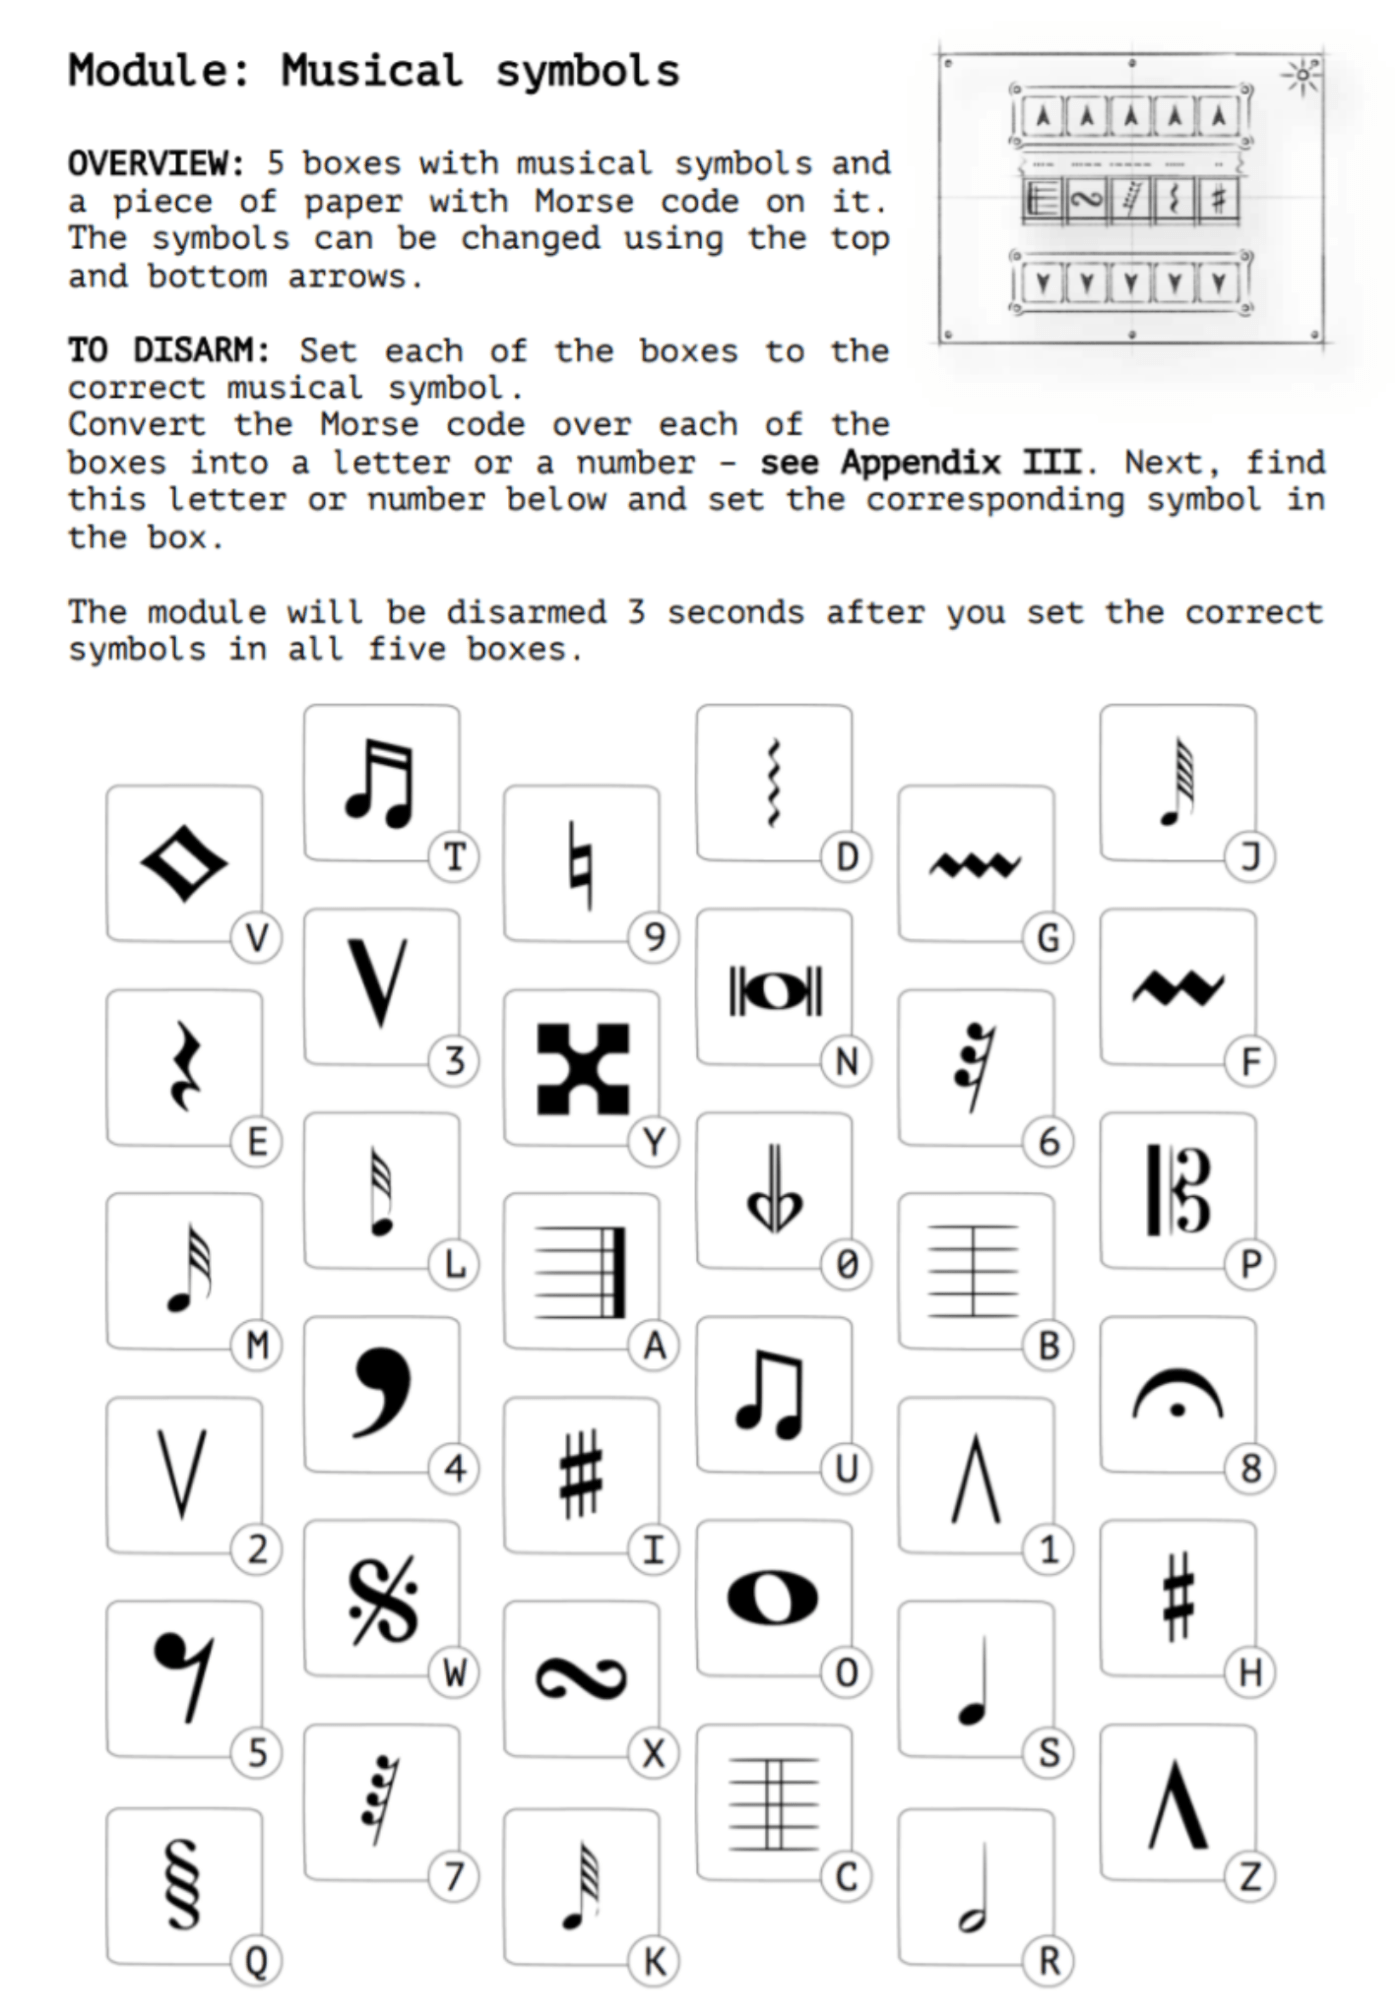 View of Musical Symbols from the Expert's perspective